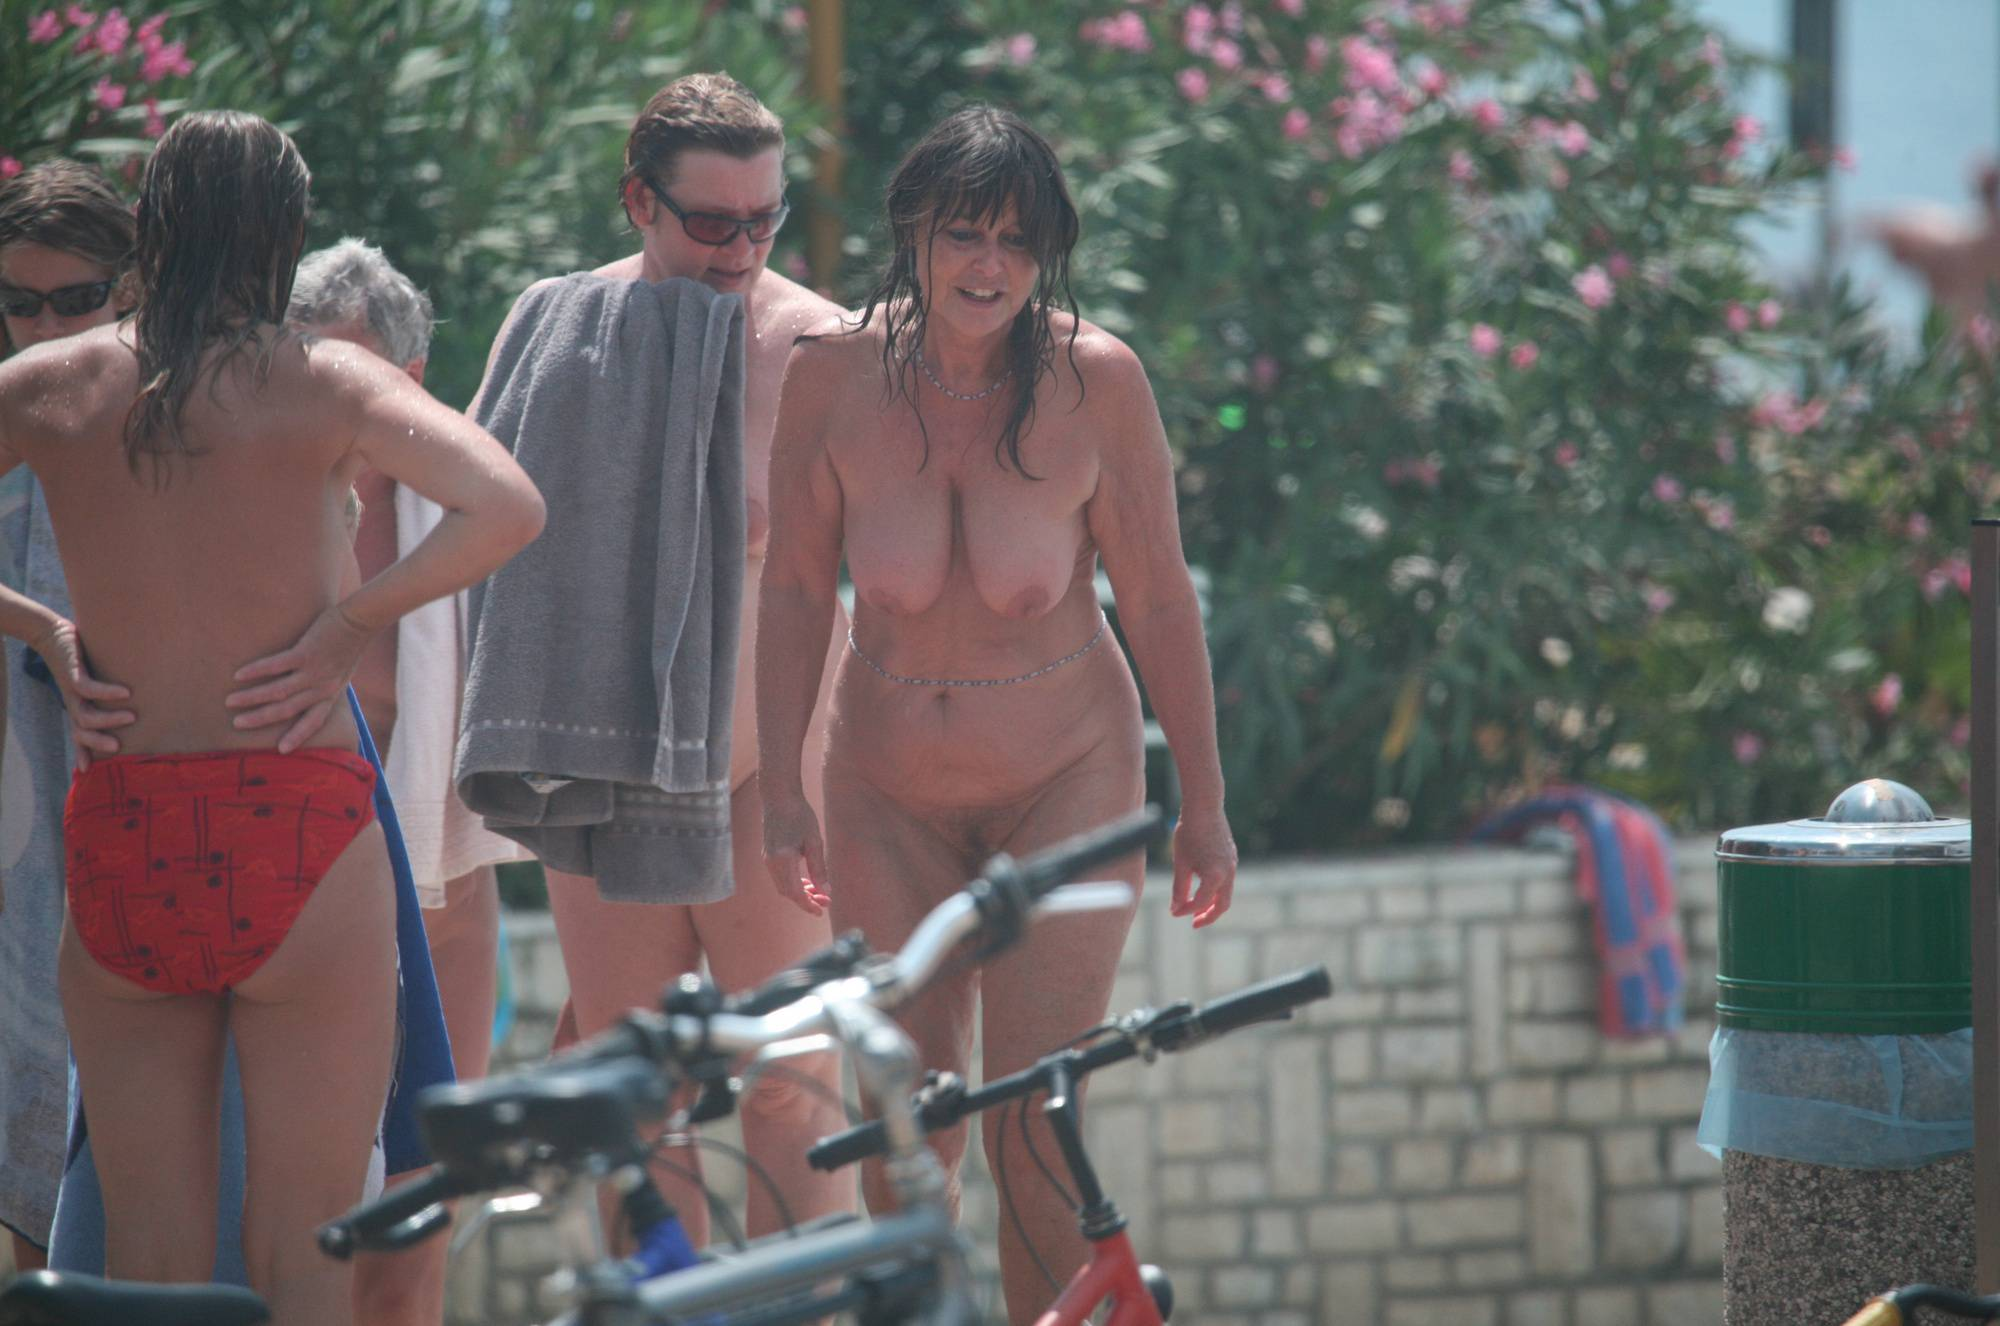 Pure Nudism Images Nuda Pool Guest Outskirts - 1